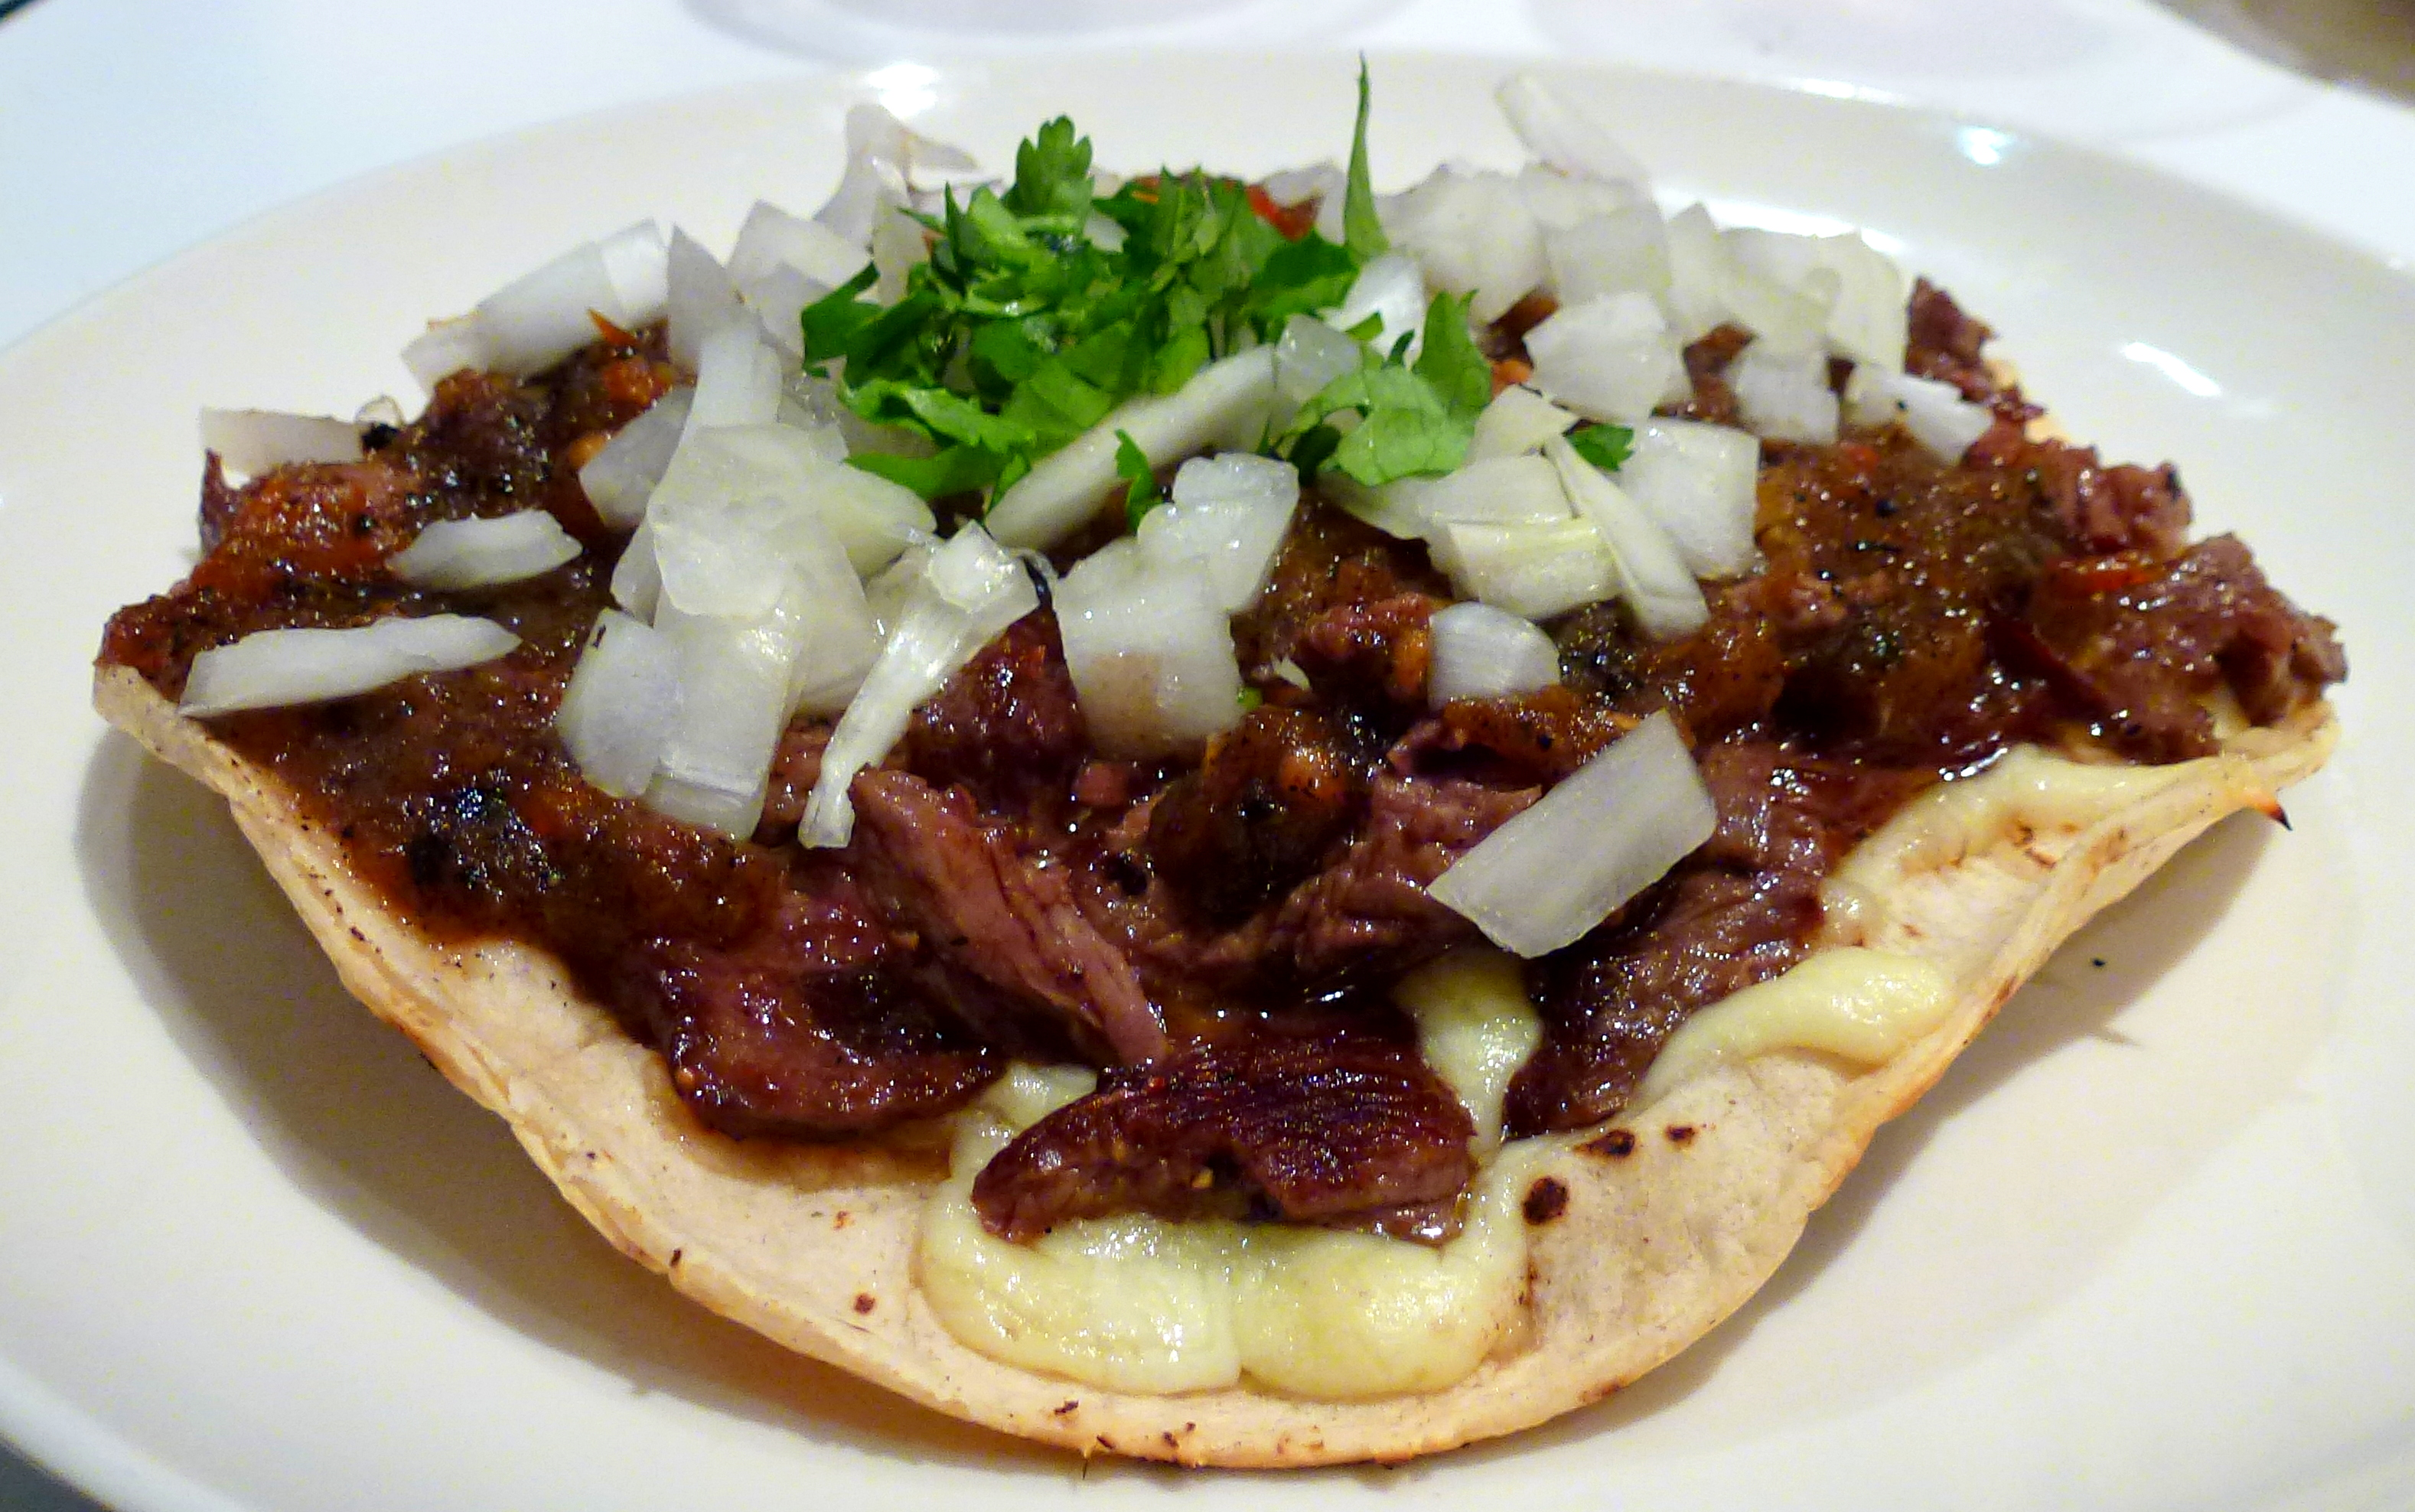 taco s carne asada chipotle beef taco s with caramelized onions taco ...